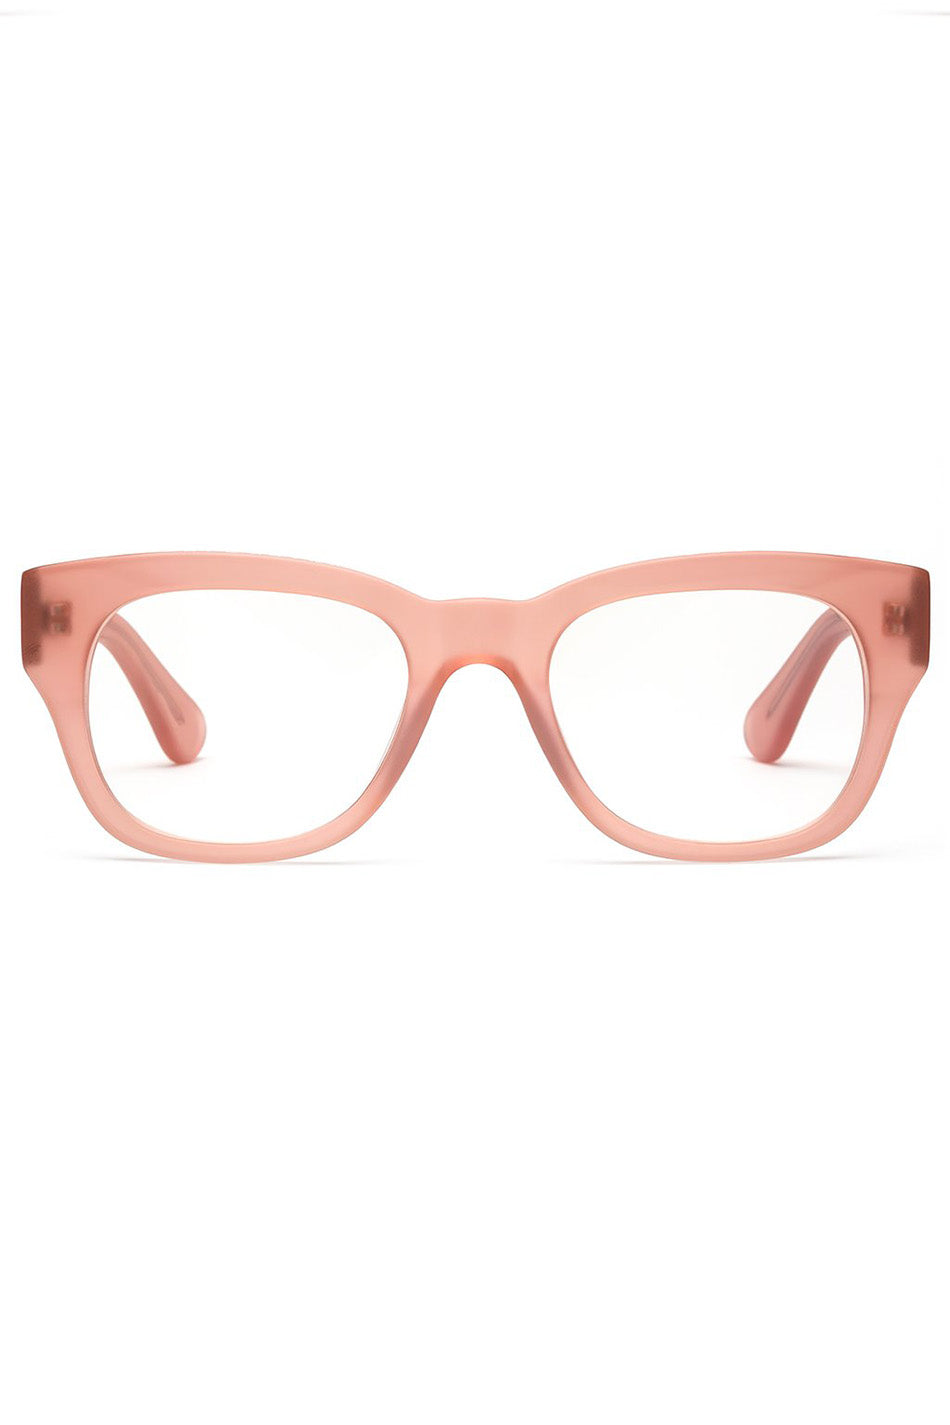 CADDIS - MIKLOS reader glasses, Matte Pink